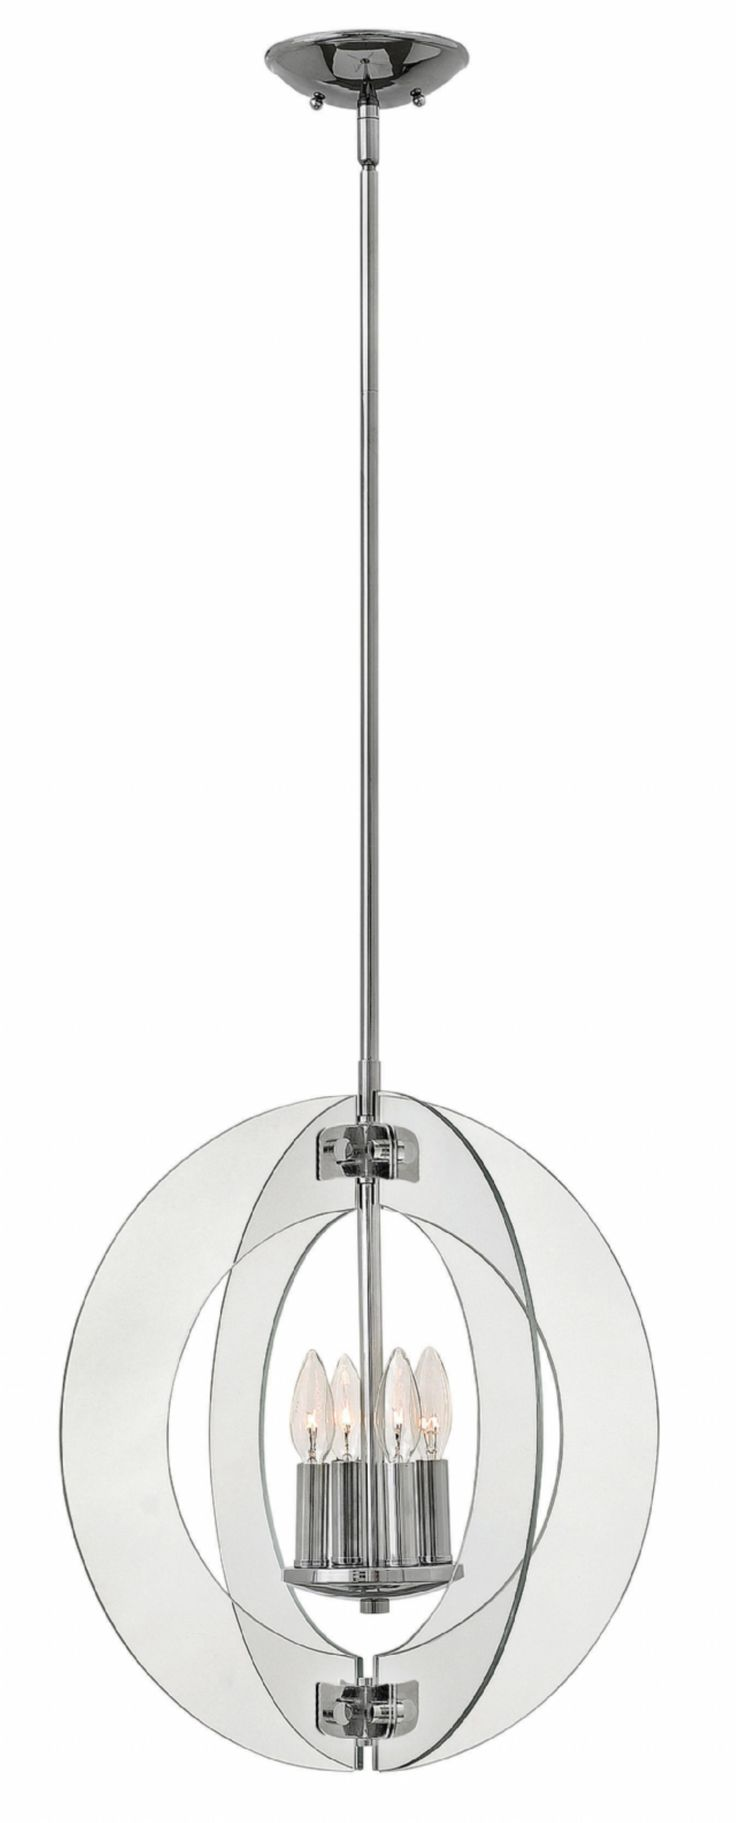 living lighting beaches. Living Lighting Beaches. Random Pendant Ideas Hinkley - Solstice Fr47505pcm Beaches Q Qtsi.co